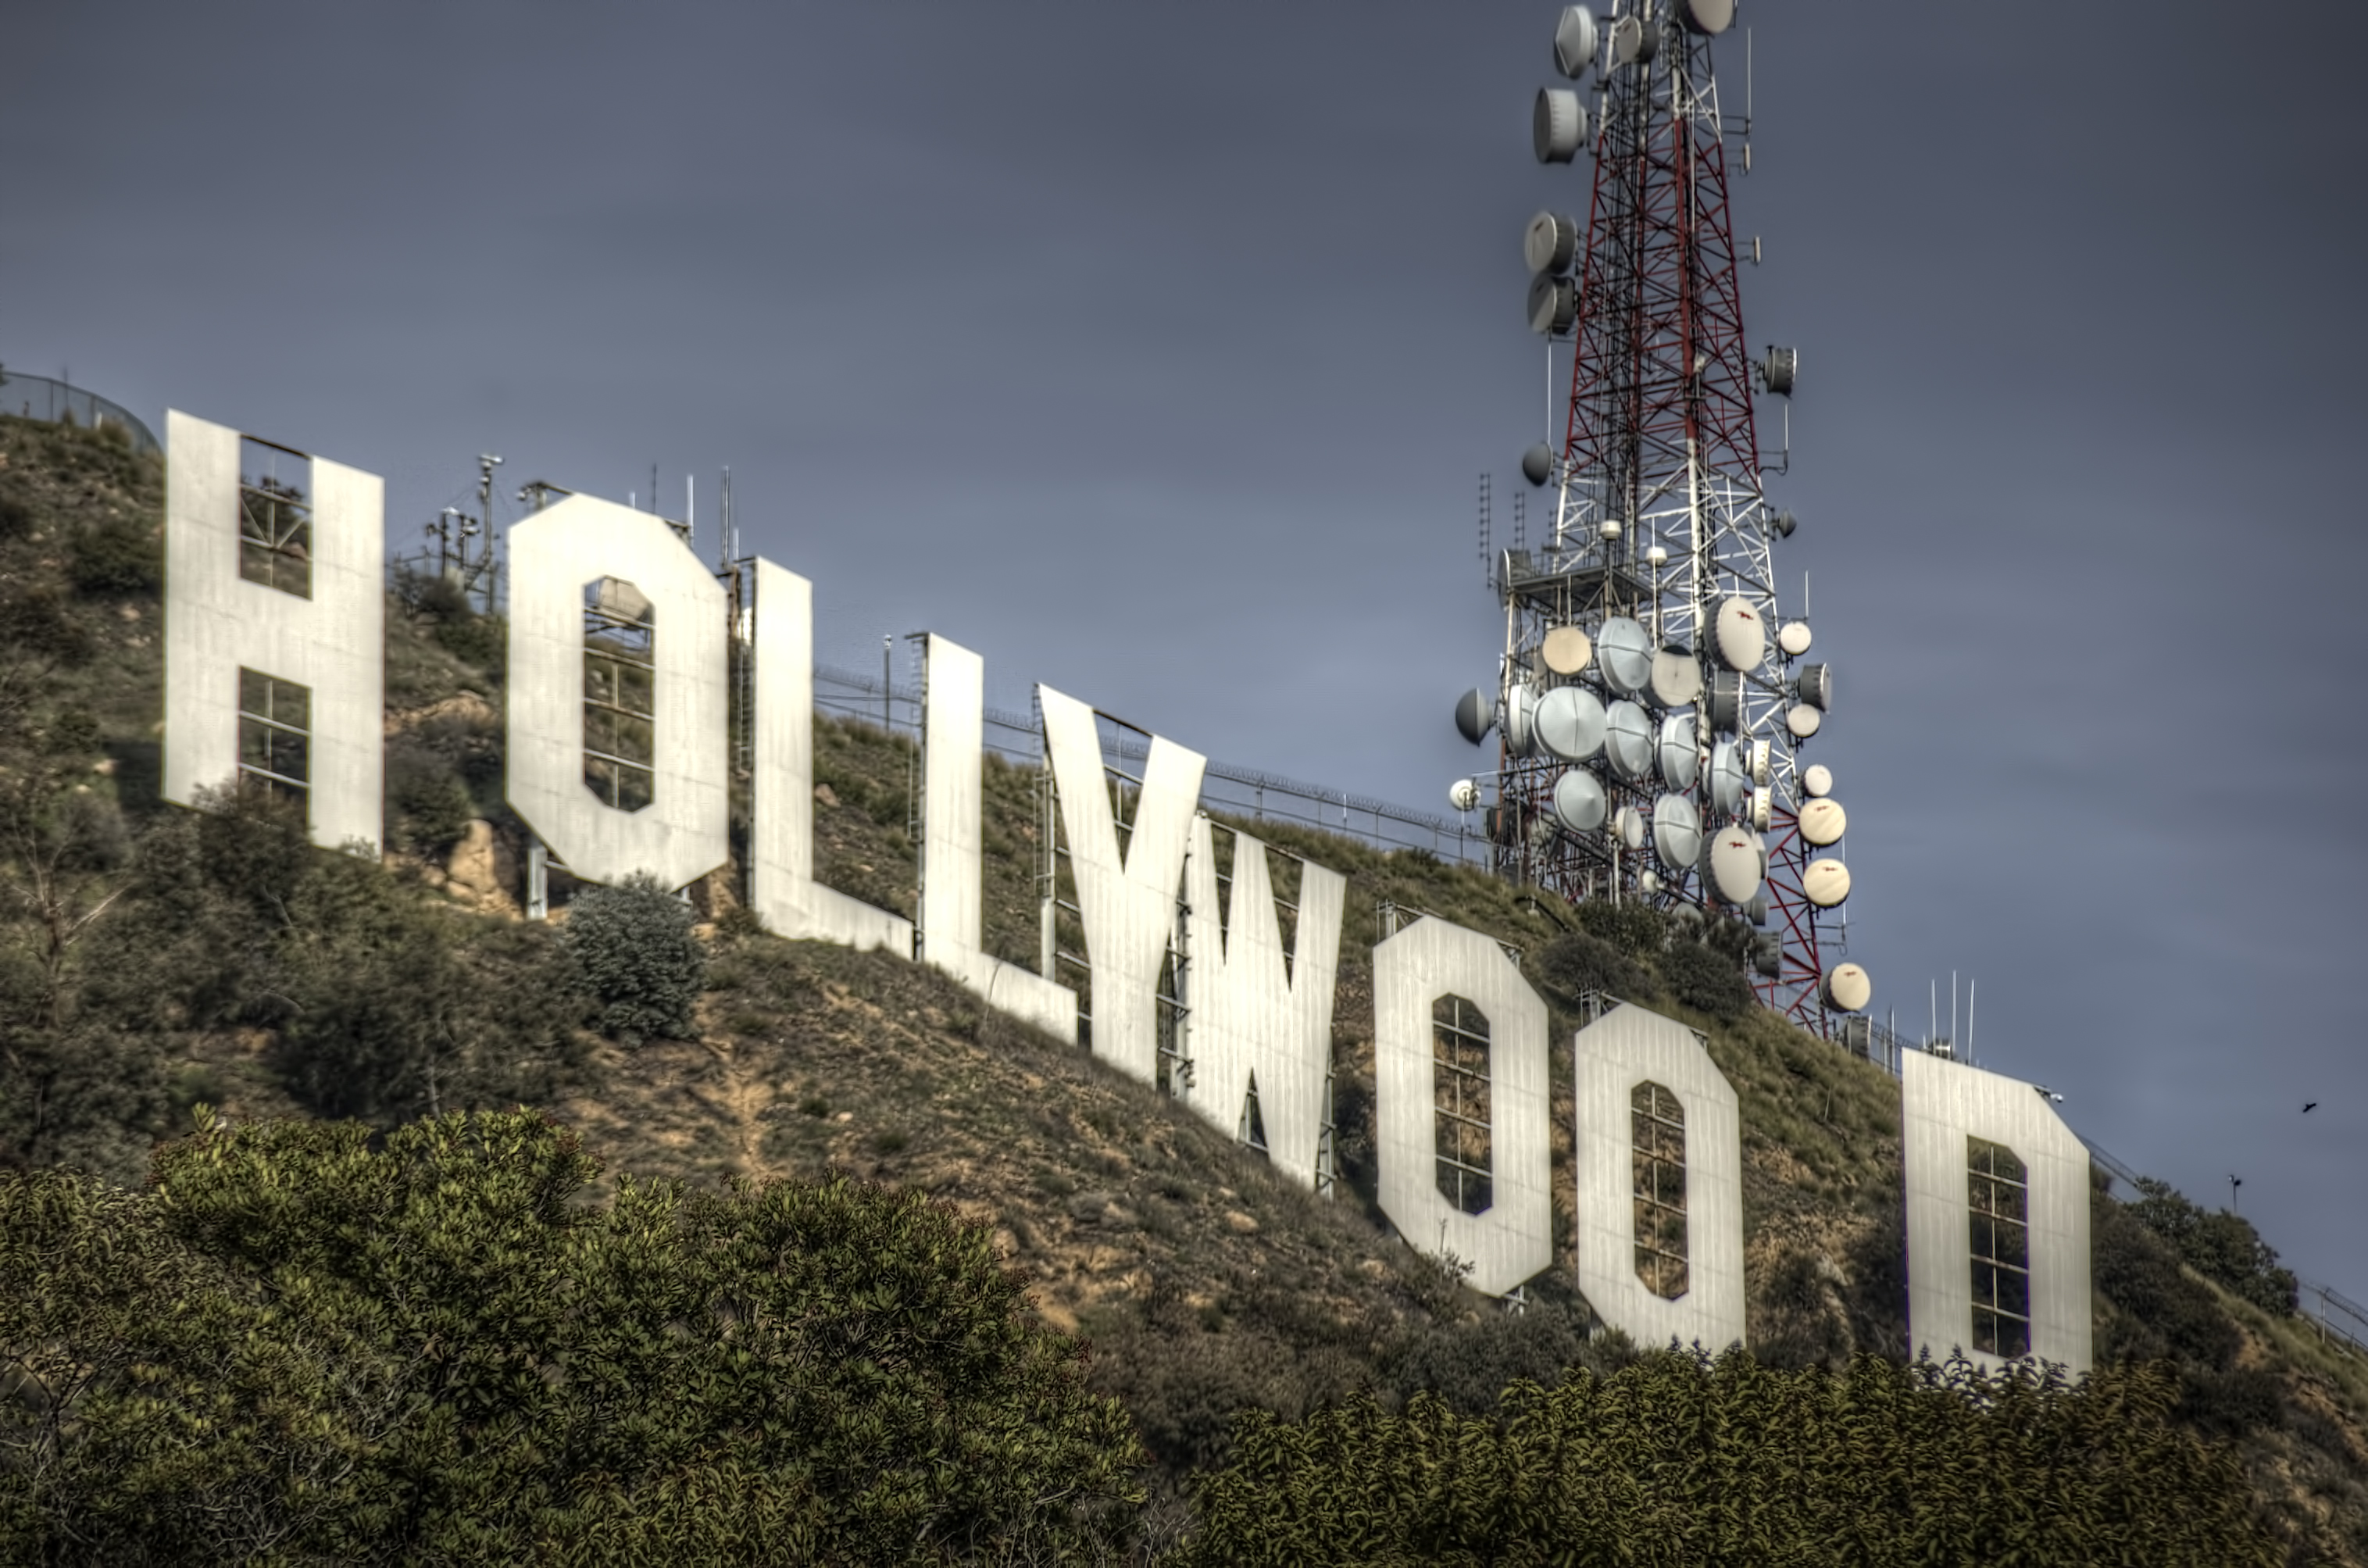 Hollywood Sign Backgrounds Hollywood sign wallpaper 3031x2007